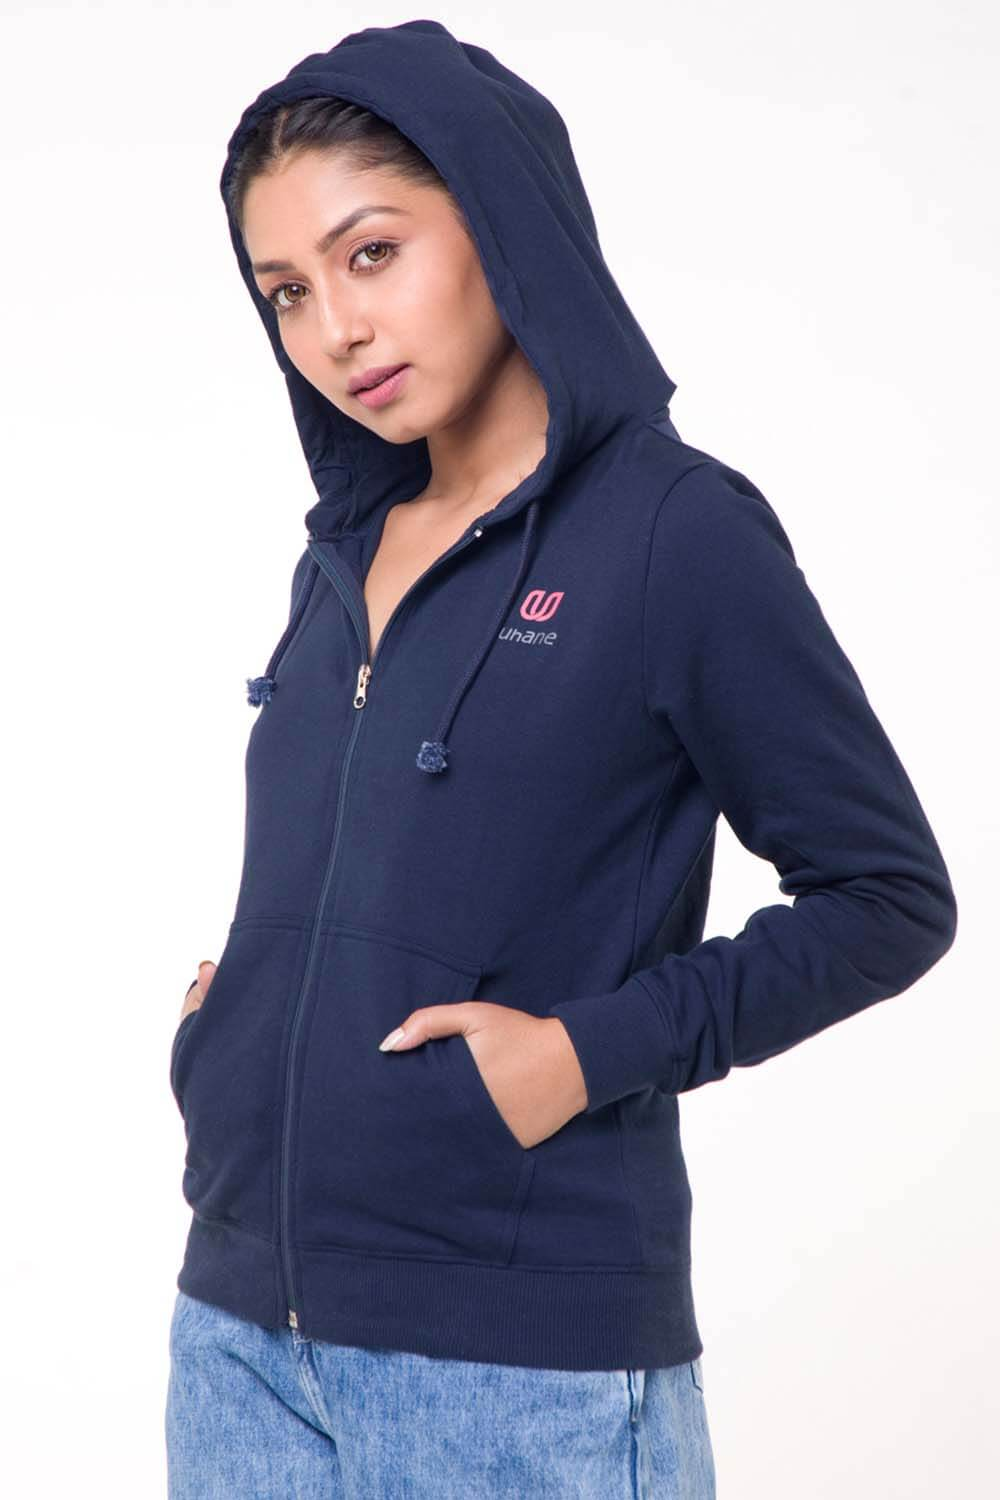 Women's Athleisure and Work-Out Dark Blue Cotton Loose-Fit Hooded Jacket